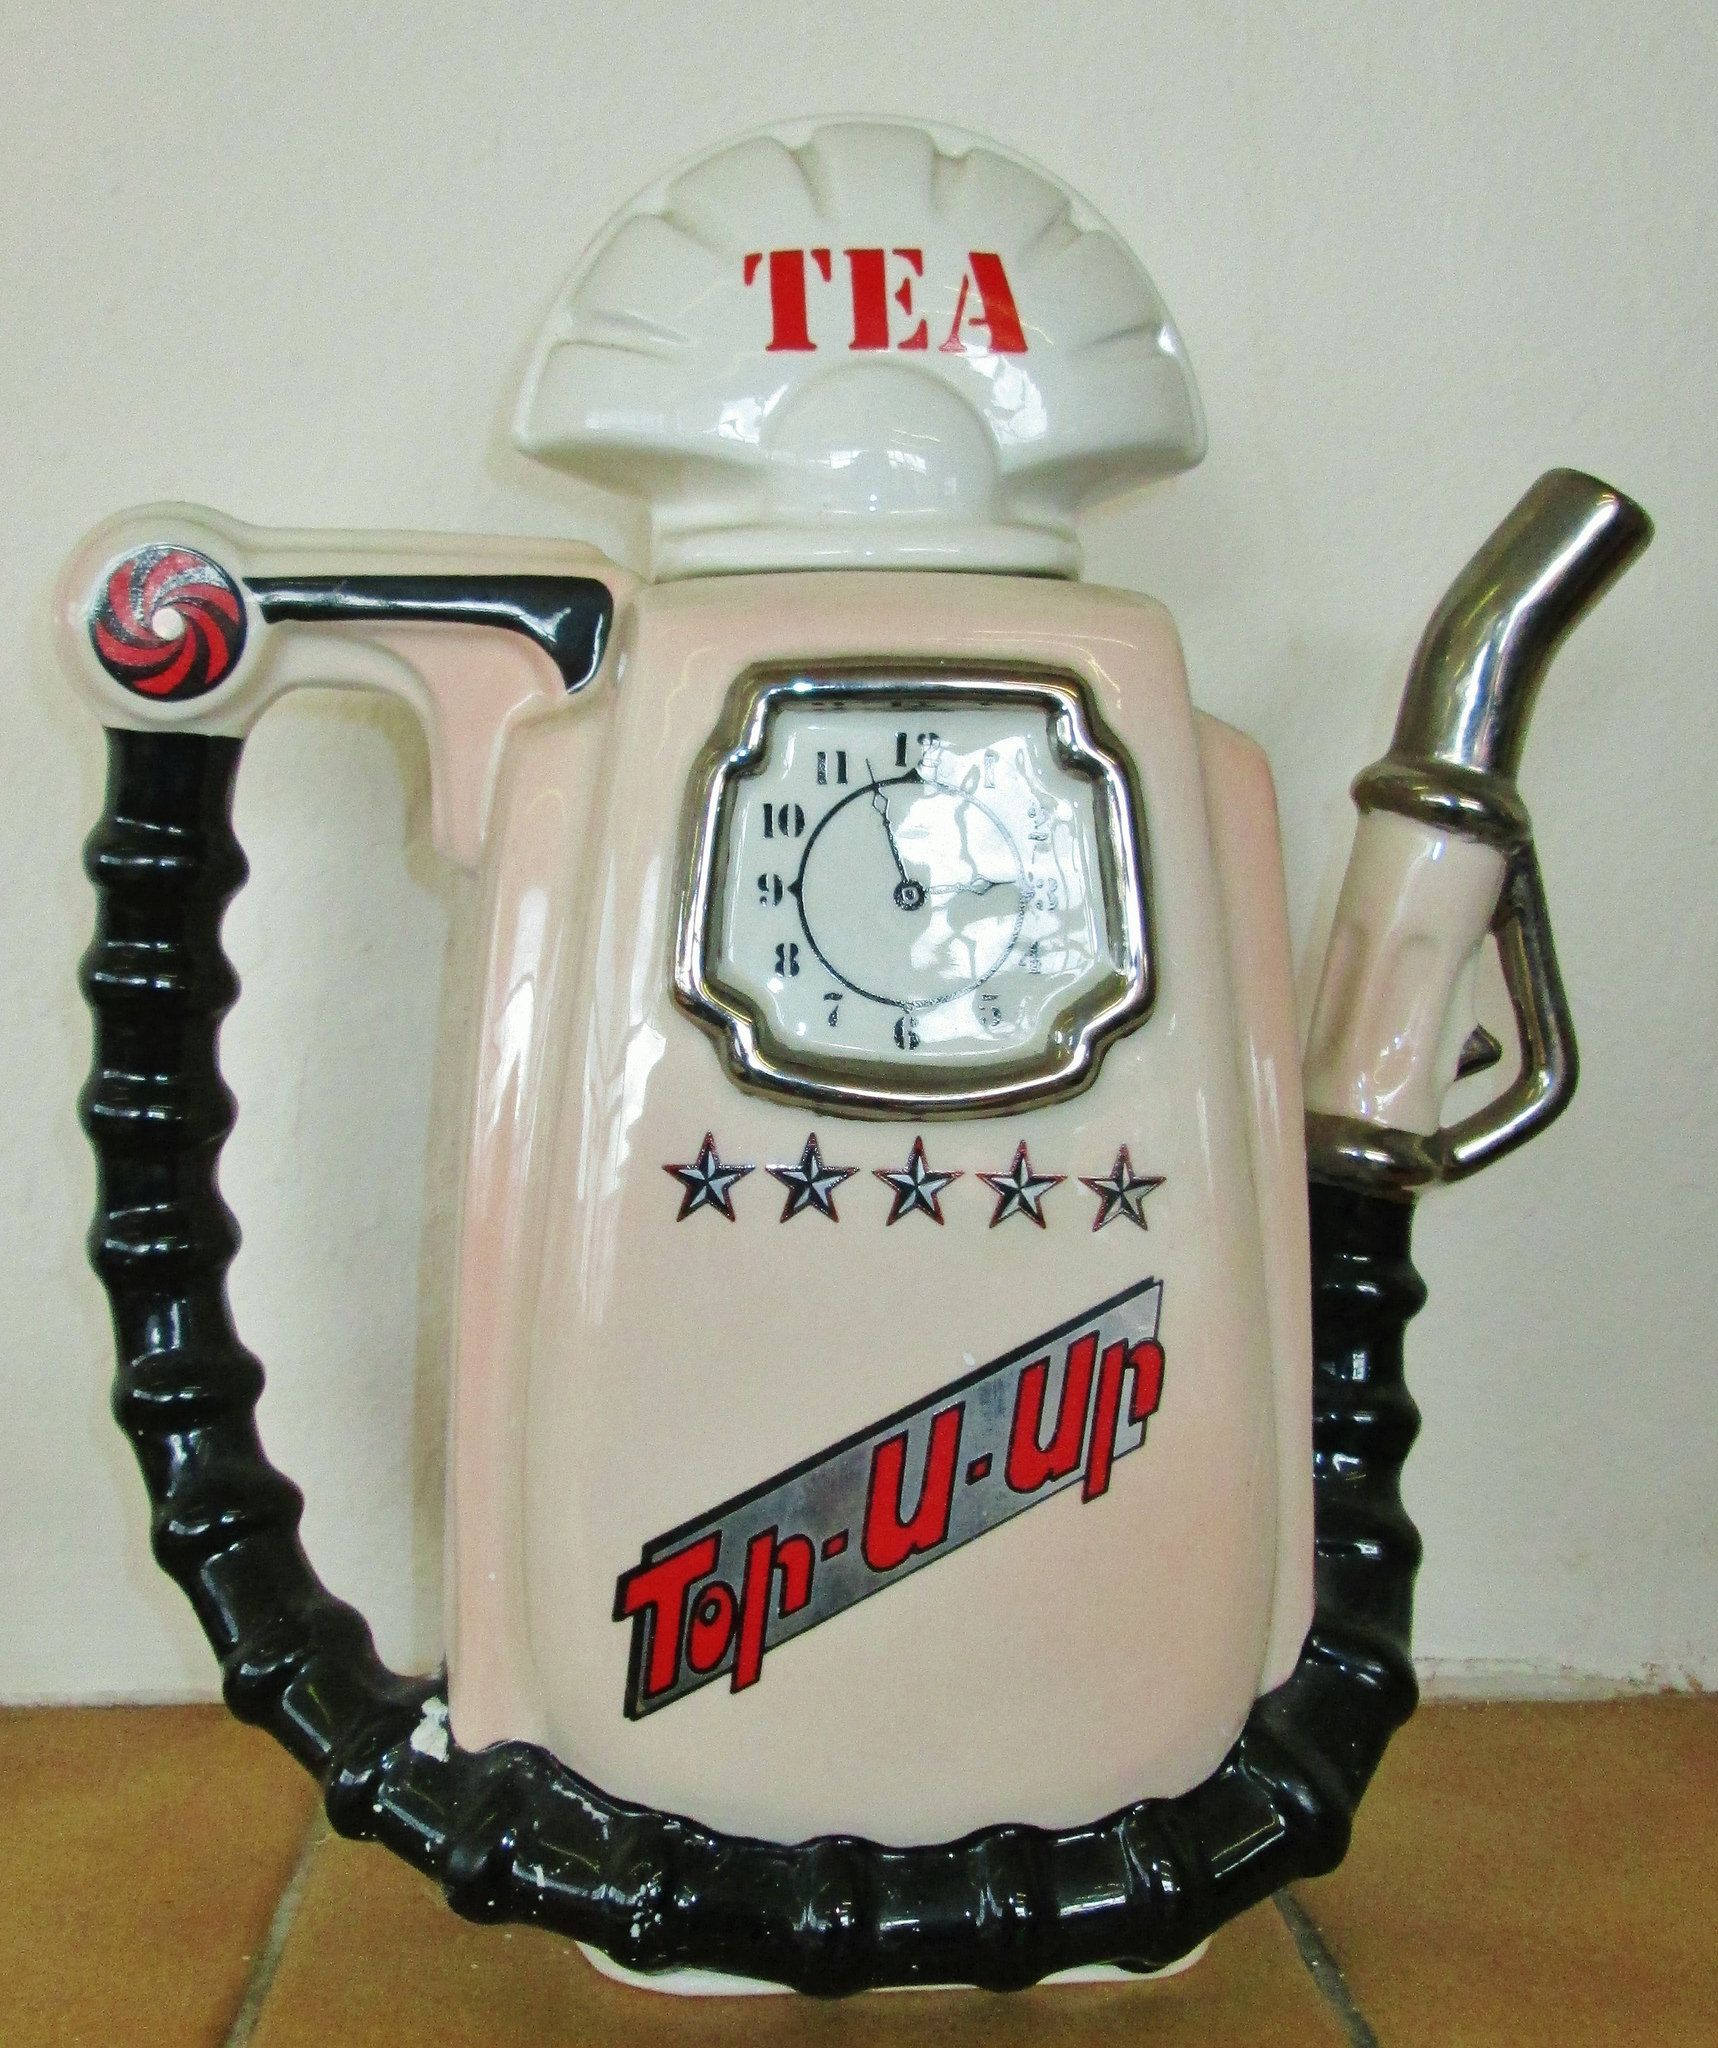 Fuel pump tea pot October 2015